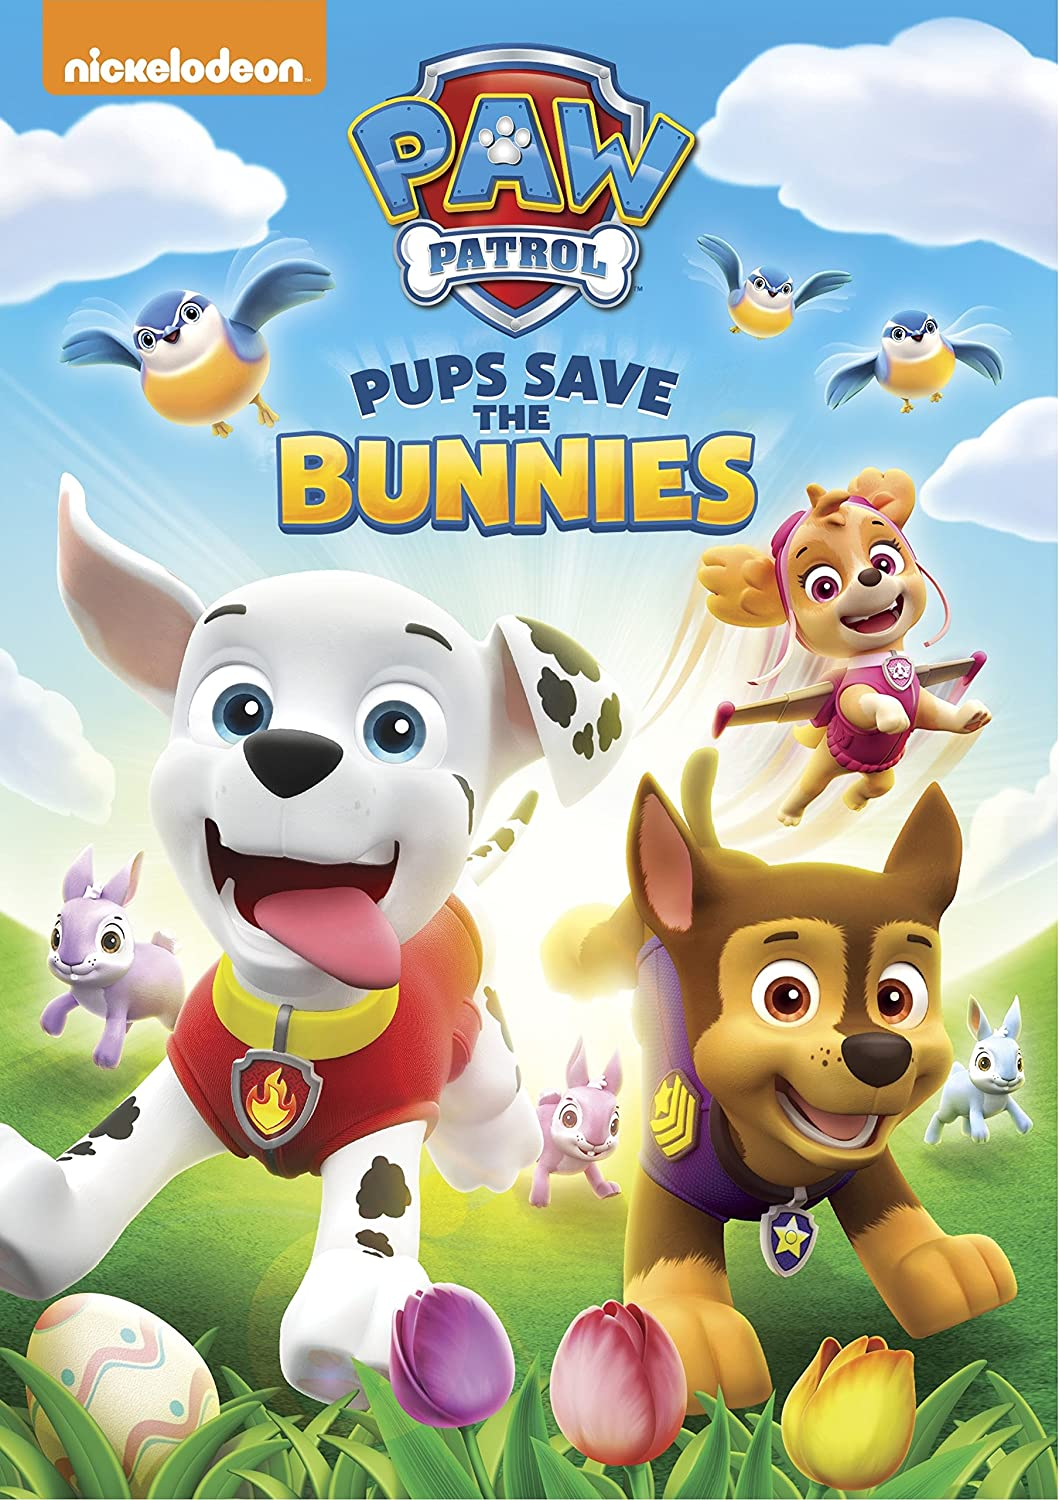 Paw Patrol Pups Save the Bunnies